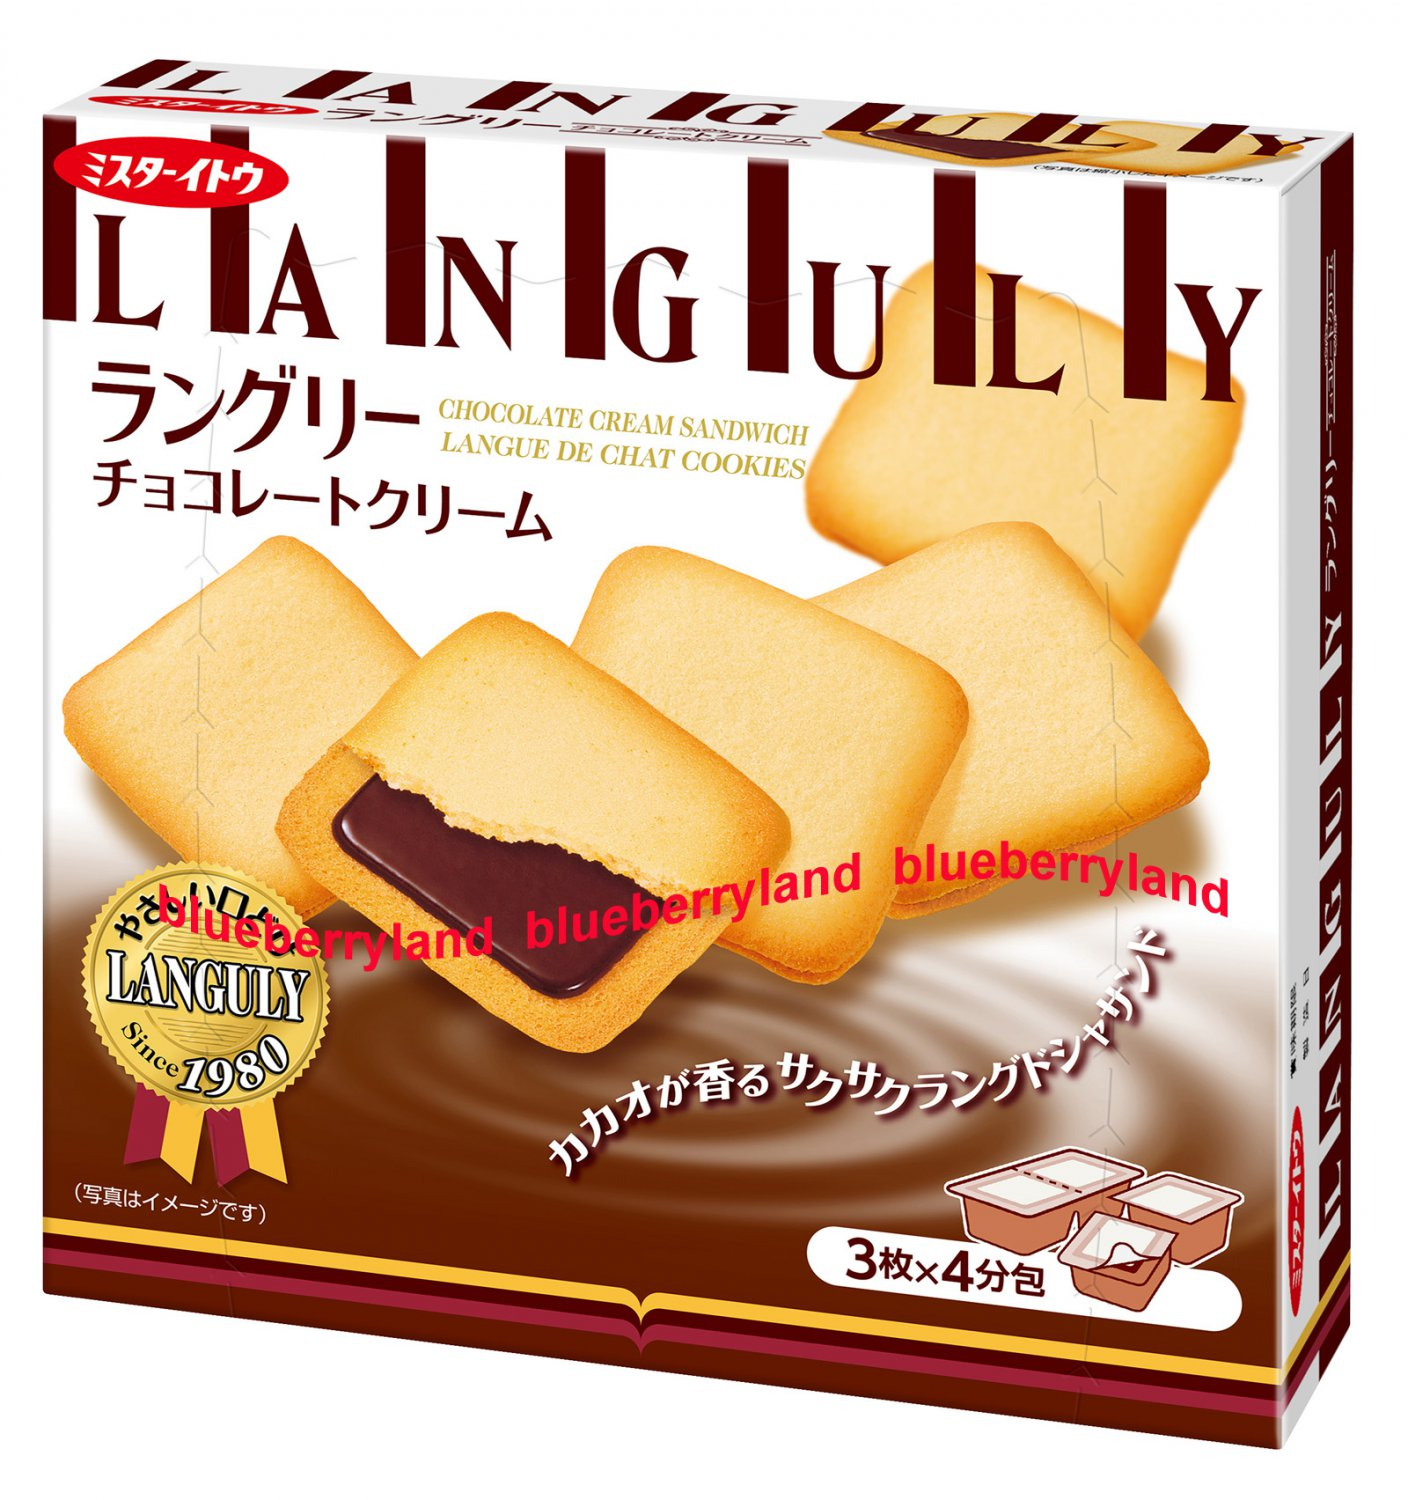 Japan Langley Chocolate Cream Sandwich langue de chat cookies sweets biscuits